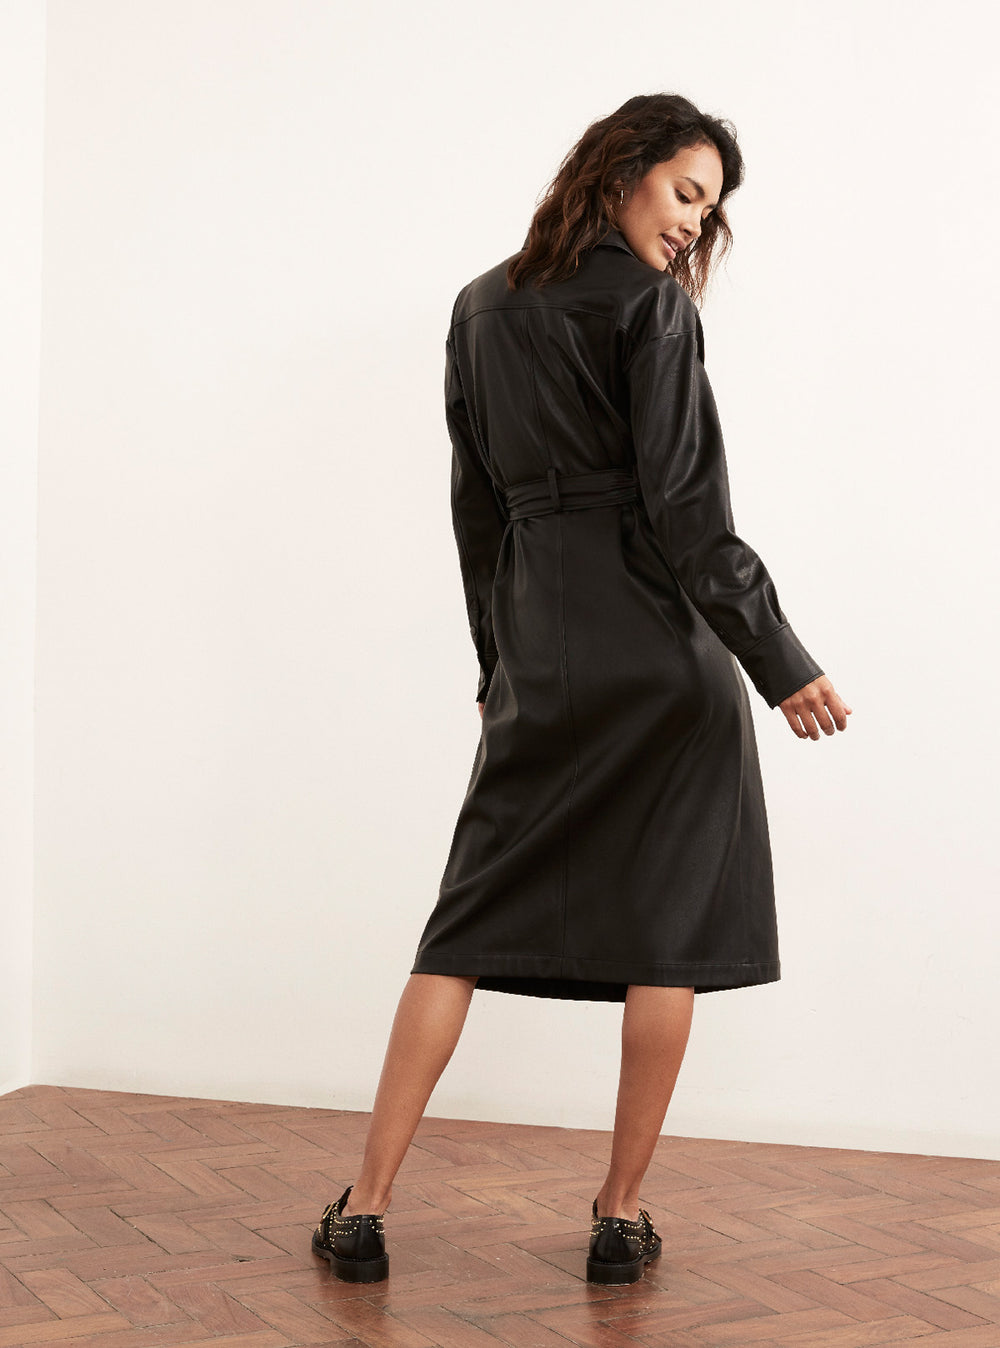 Jacqueline Black Vegan Leather Shirt Dress by KITRI Studio